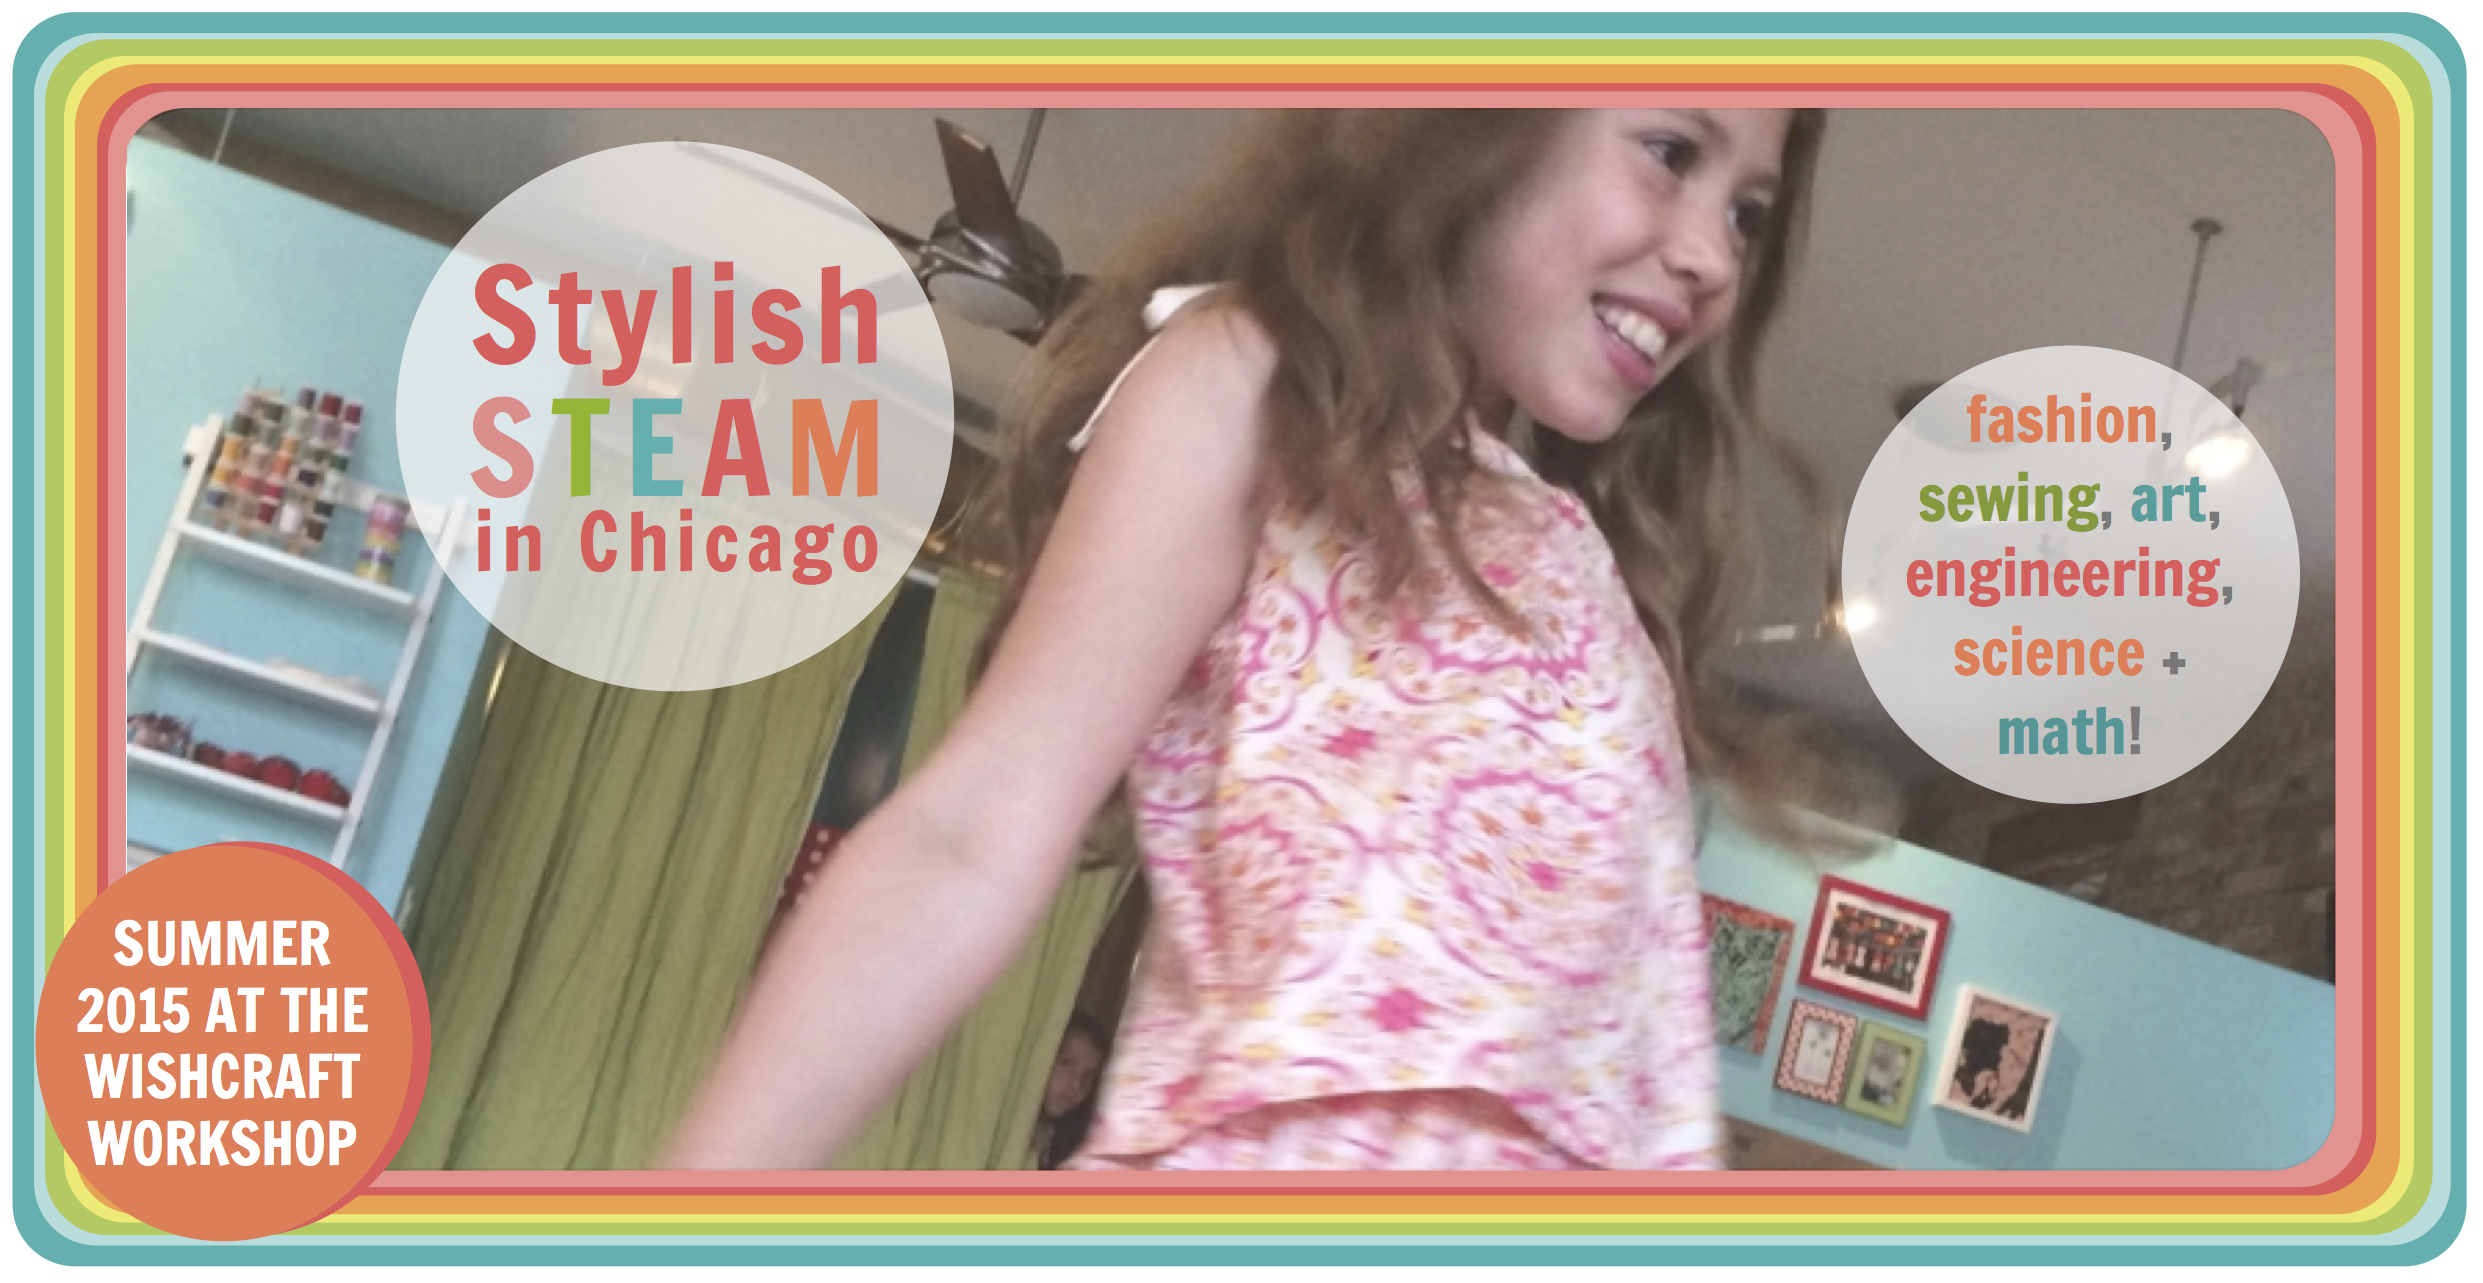 STEM, STEAM and Fashion Summer camps in Chicago! Fashion, sewing, art, engineering, science + math!